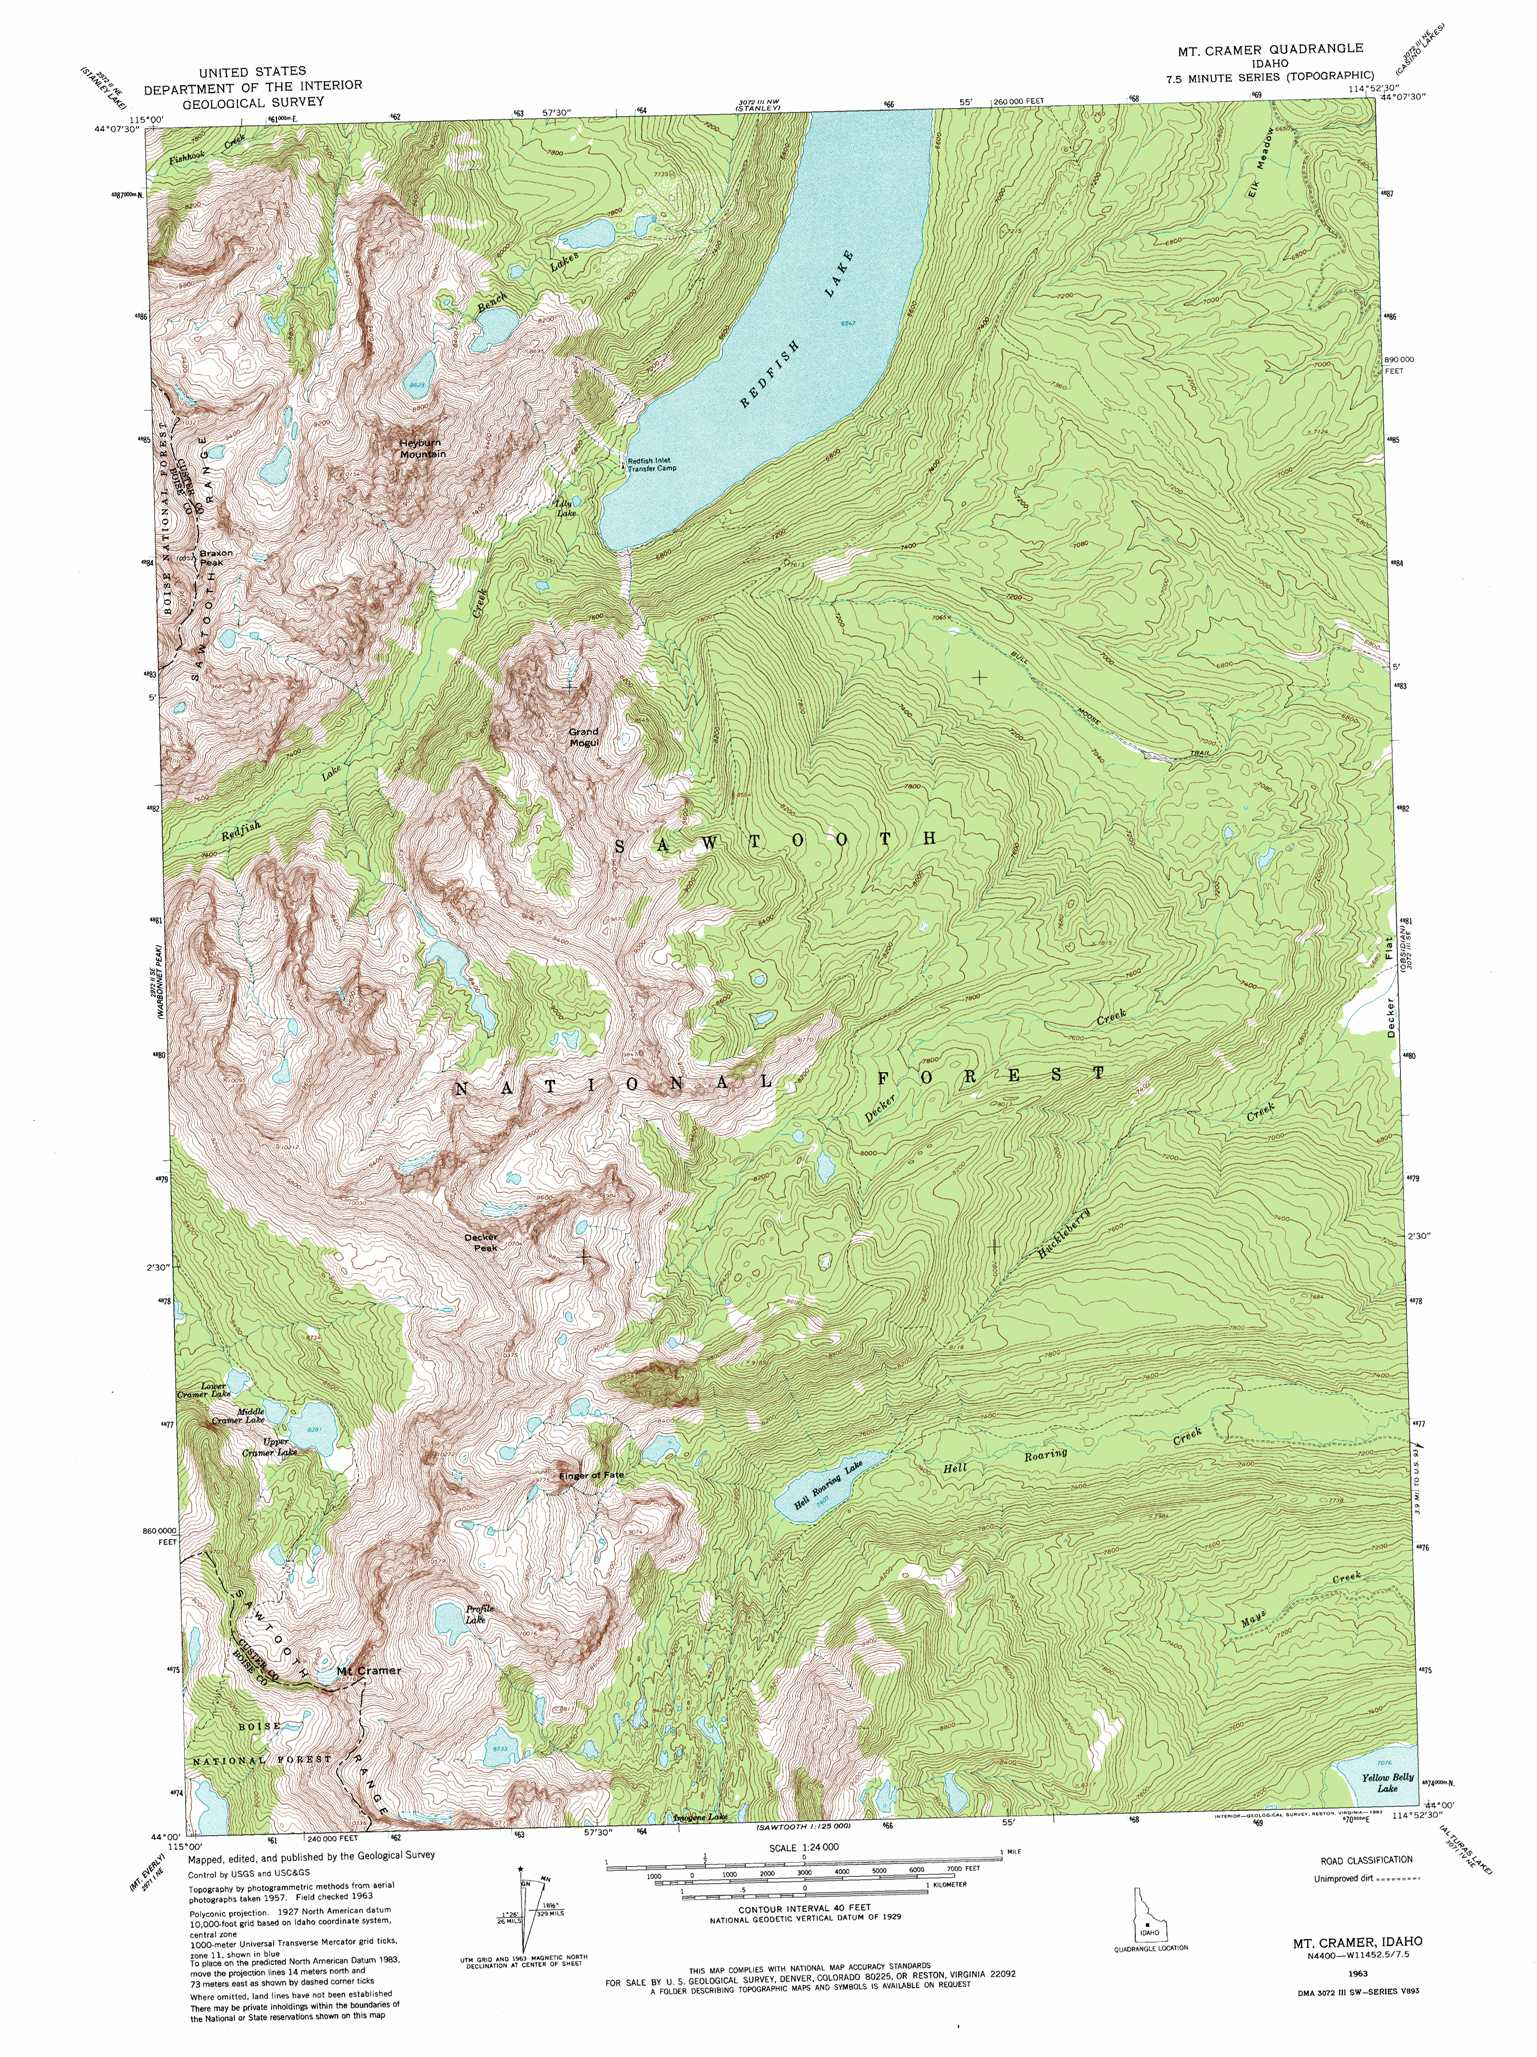 Mount Cramer topographic map, ID - USGS Topo Quad 44114a8